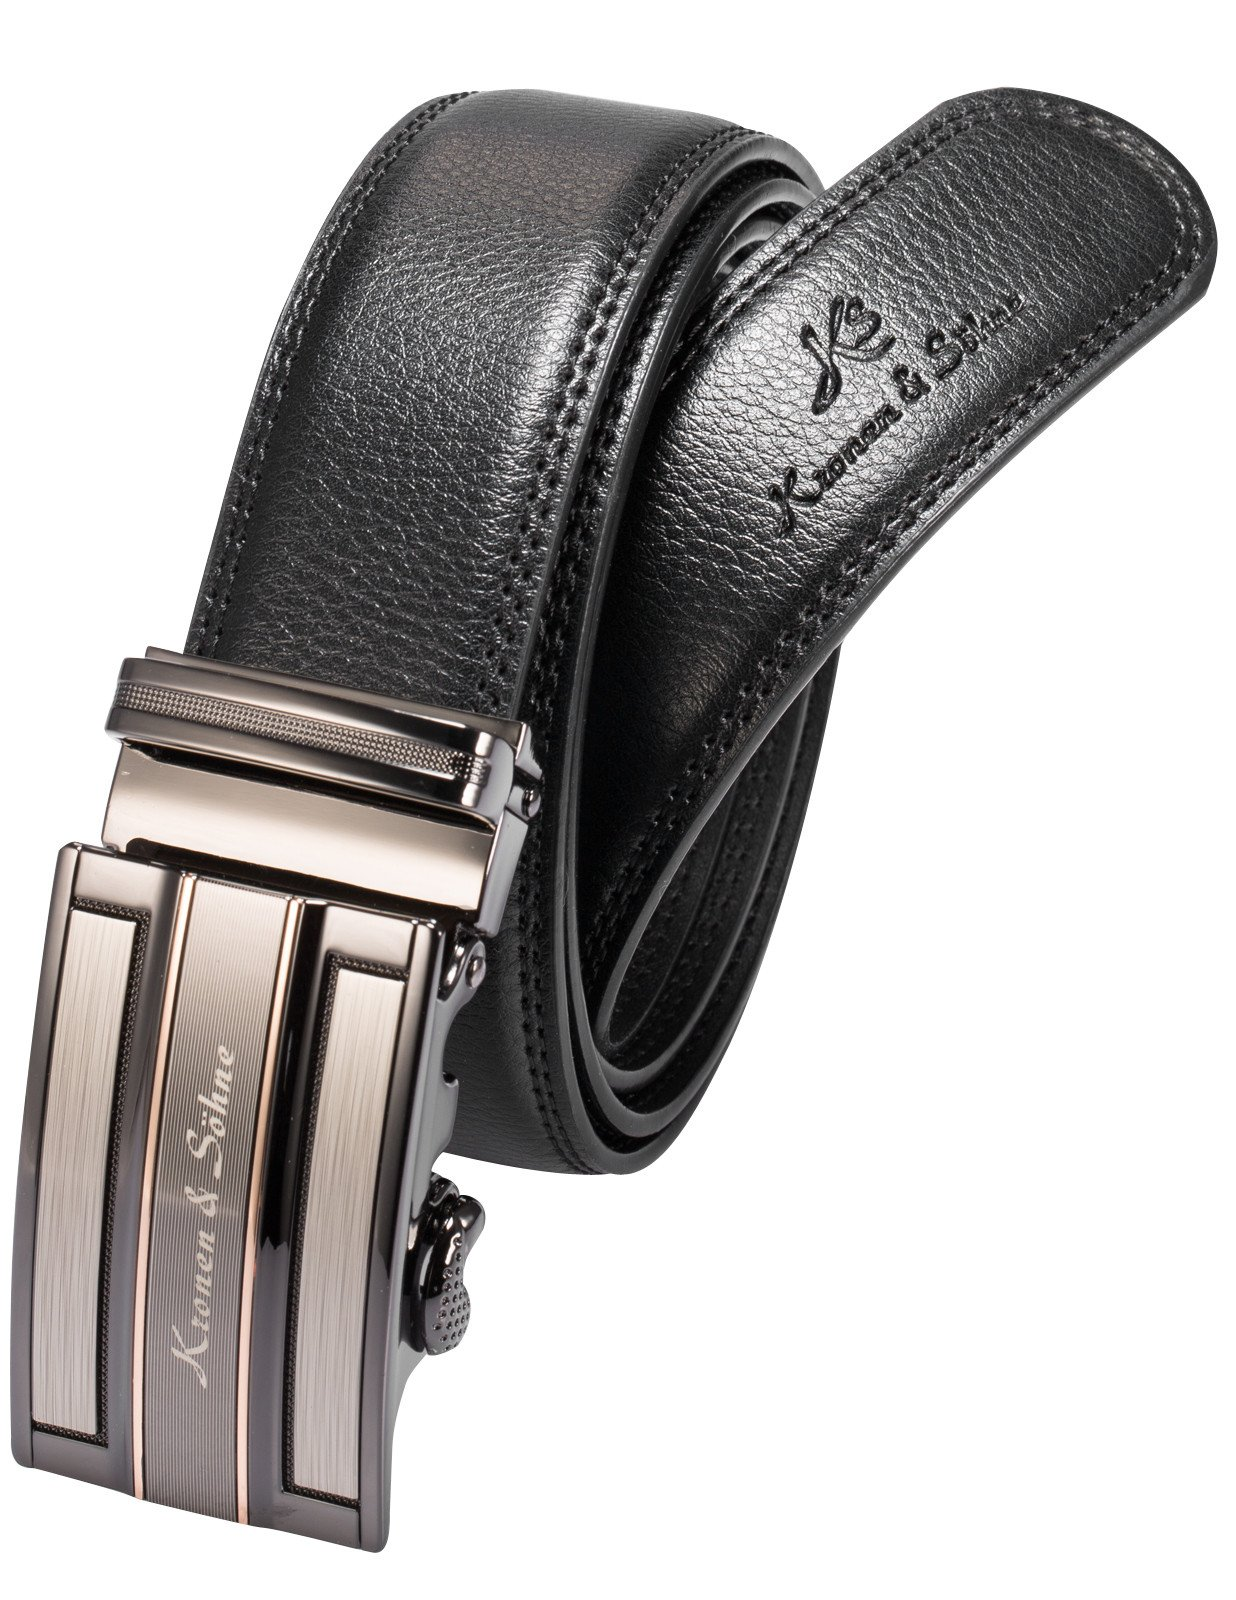 KS Mens Leather Belt, Black Auto Stainless Steel Buckle Lock Dress Suit Waist Genuine Leather Belt, Wedding Groom Gift